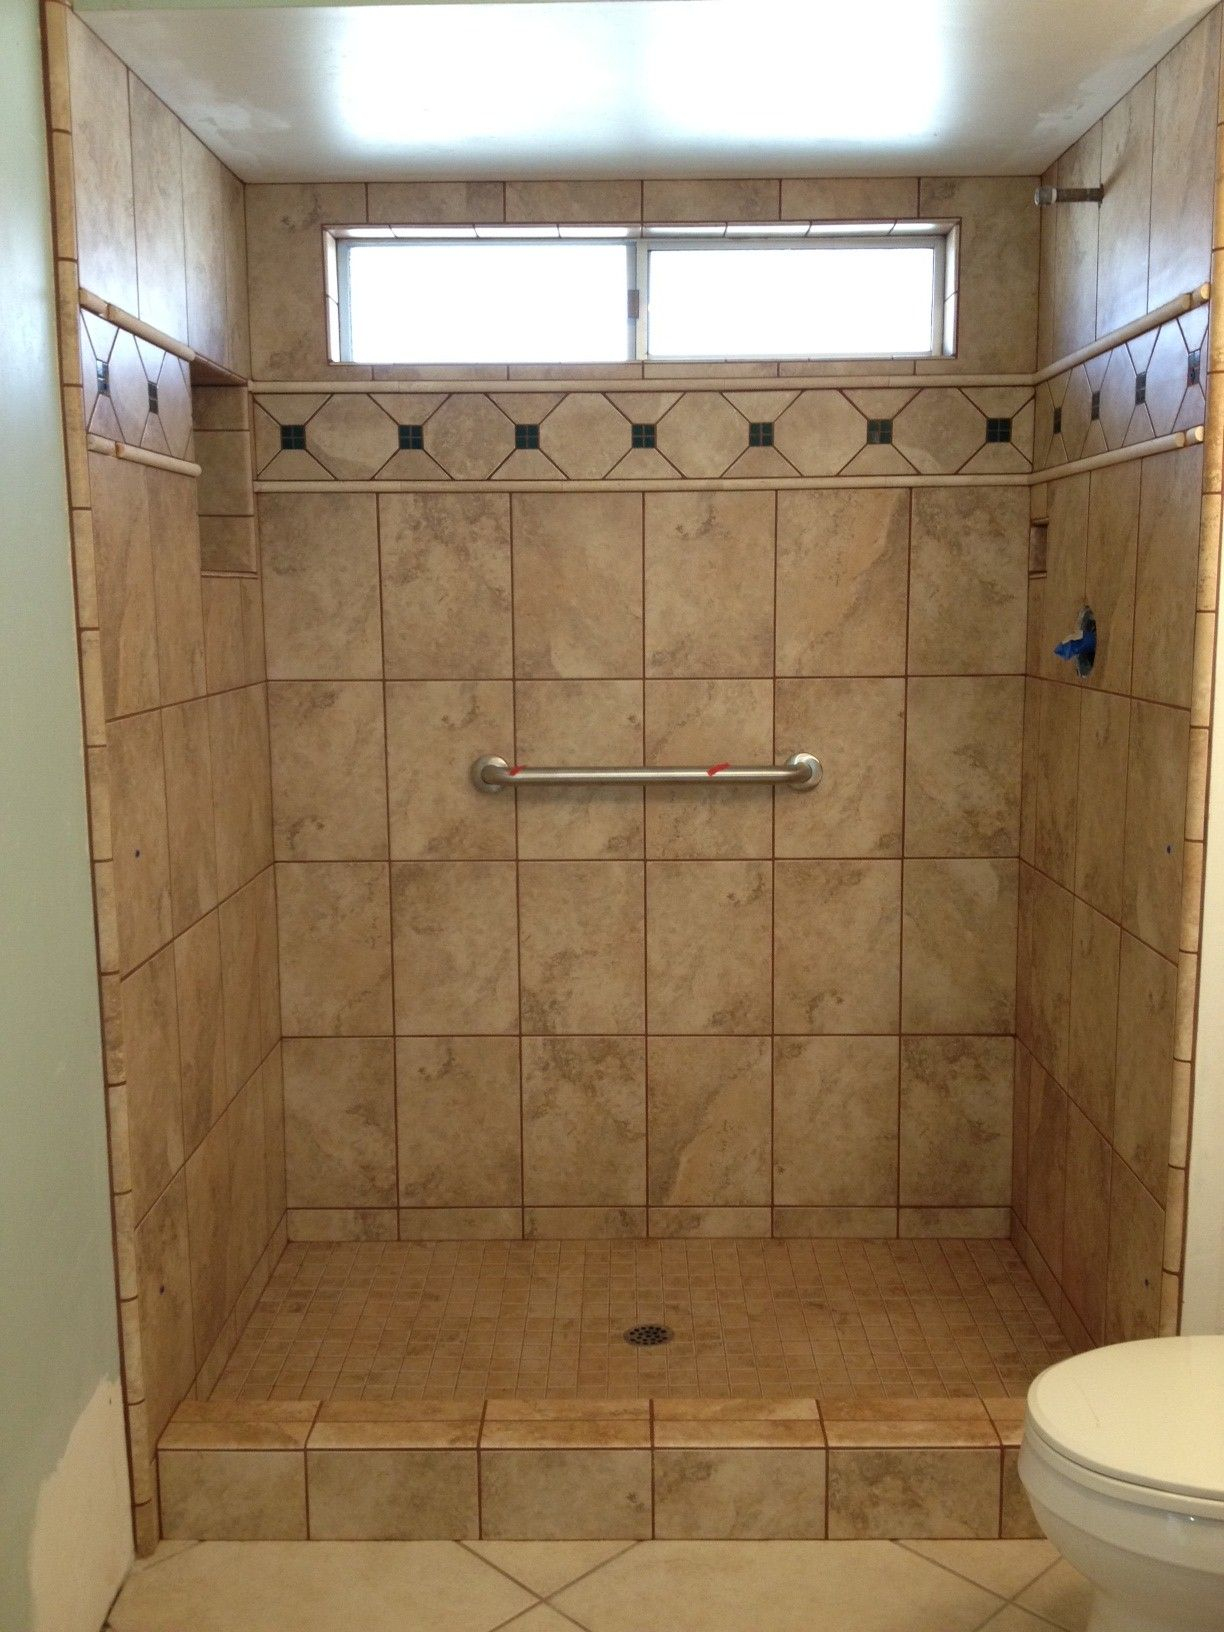 photos of tiled shower stalls | photos gallery - custom tile work